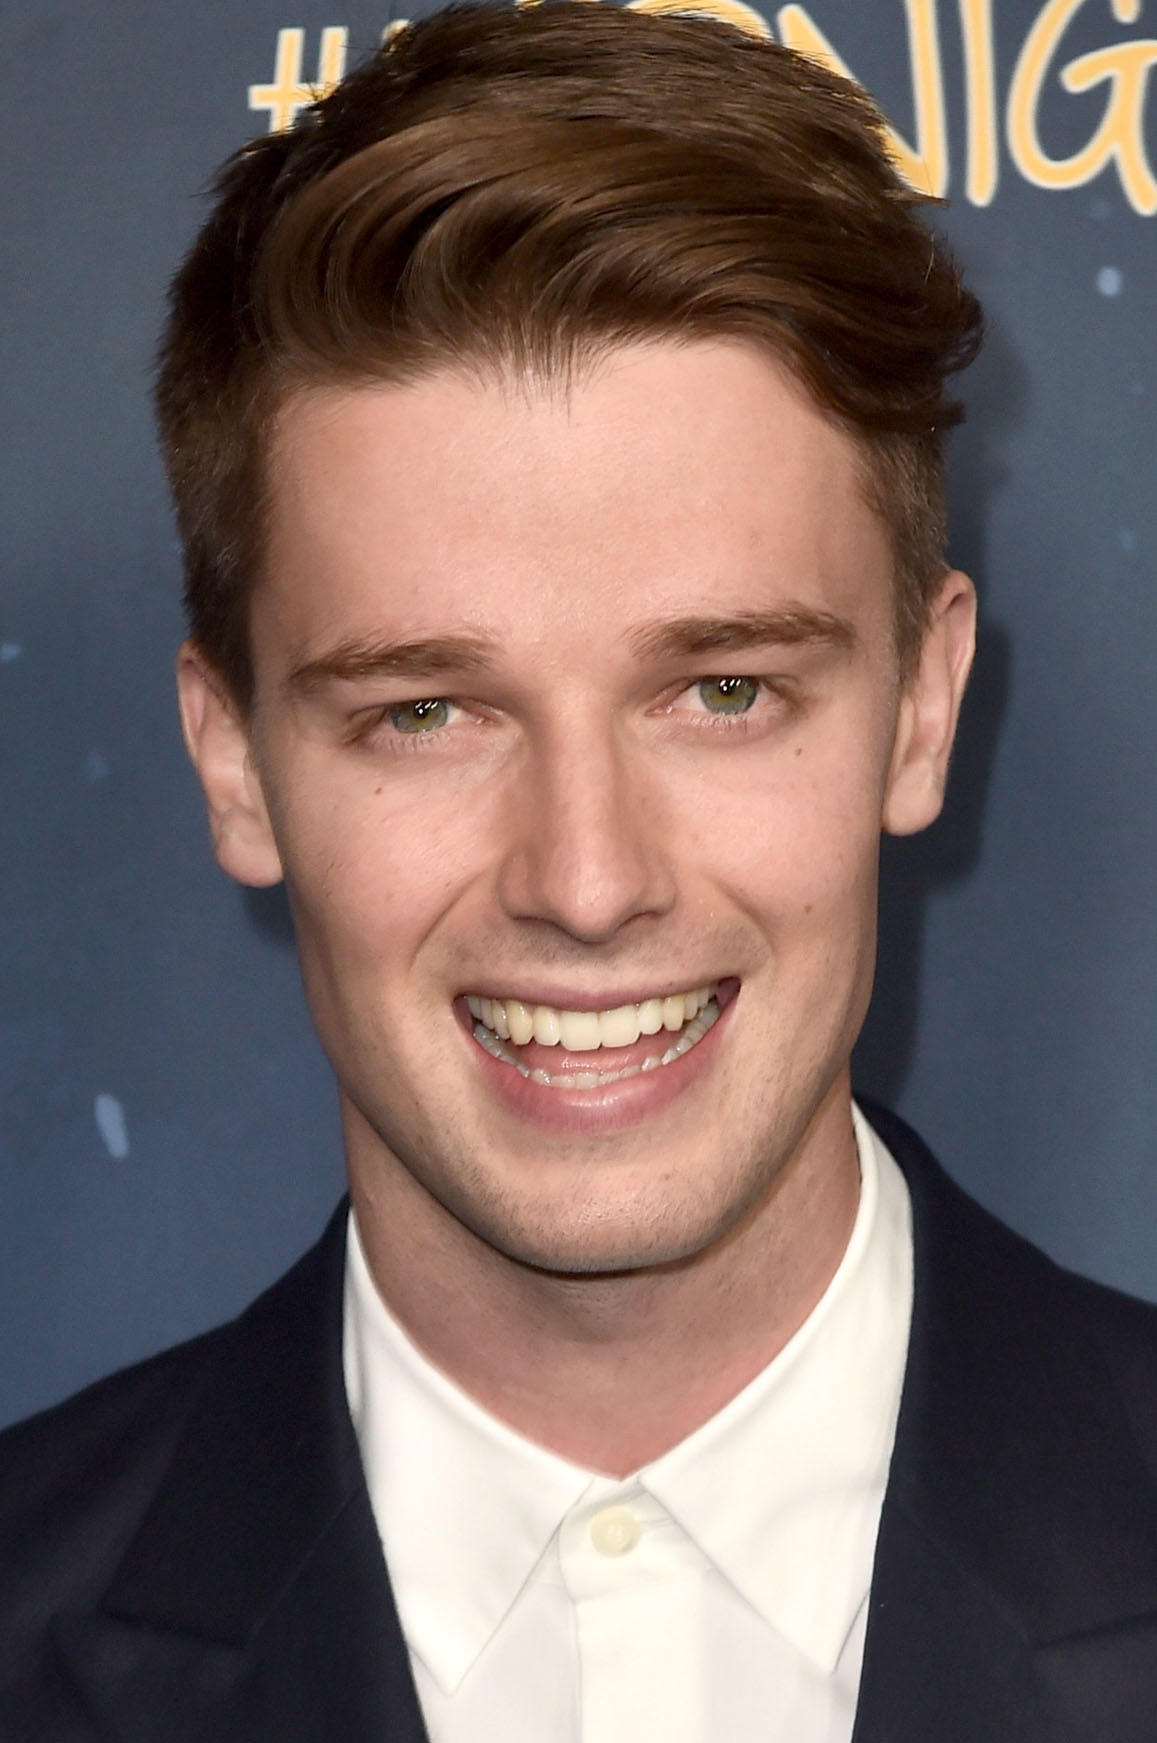 Patrick Schwarzenegger at the premiere of